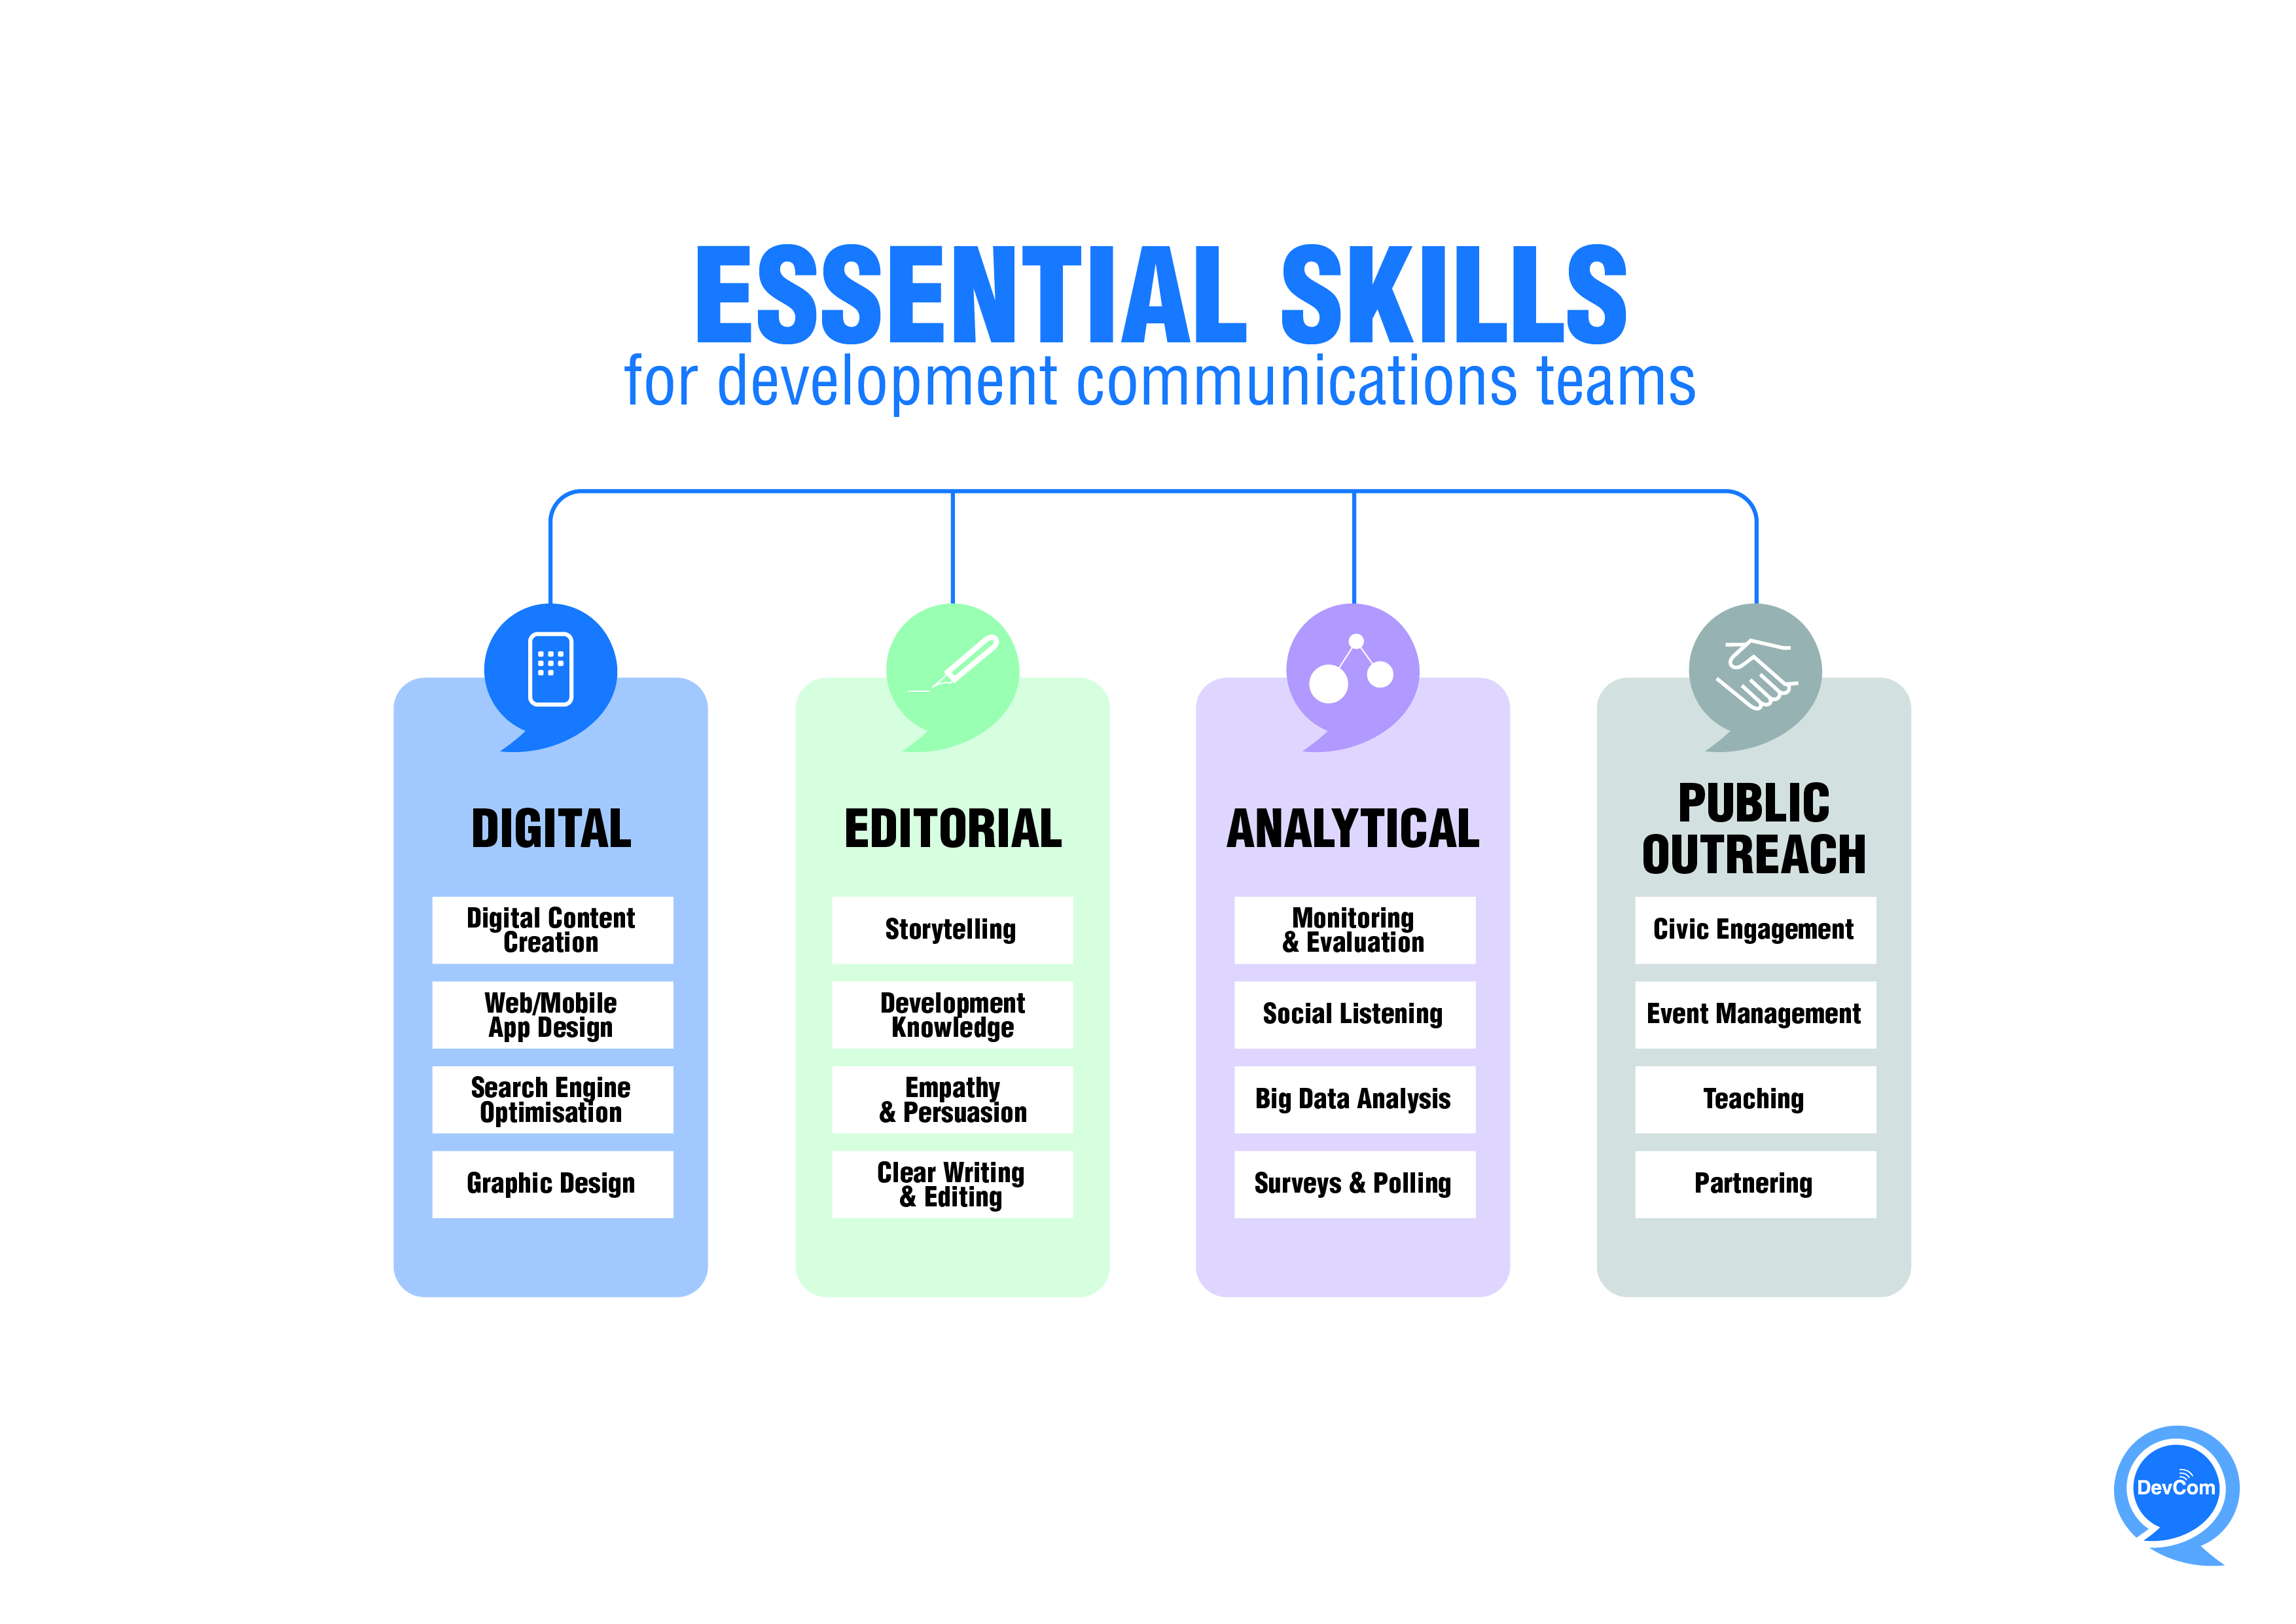 Infographic - Essential skills for development communications teams